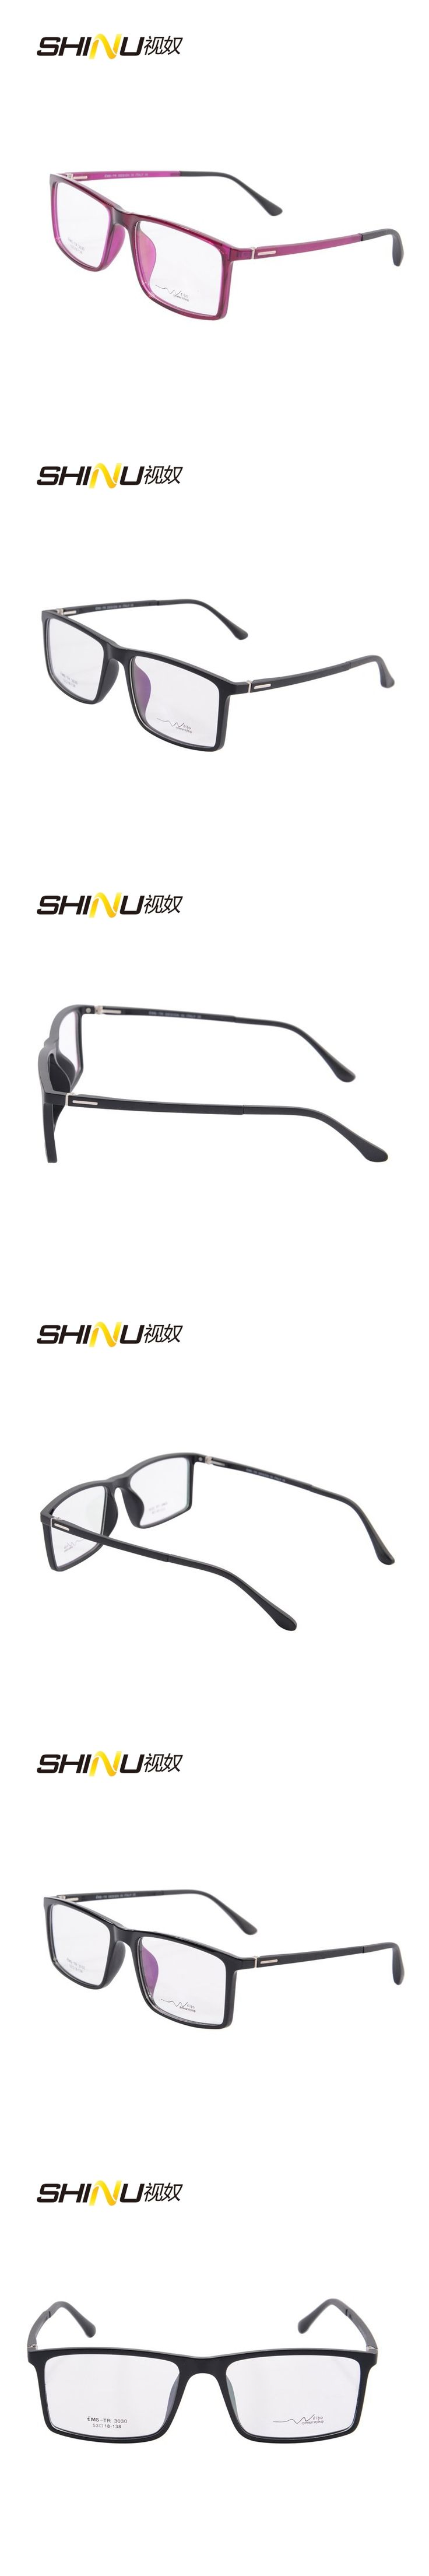 full rim square optical glasses frame  fashion brand designer eyeglasses frame women men clear lens glasses TR3030